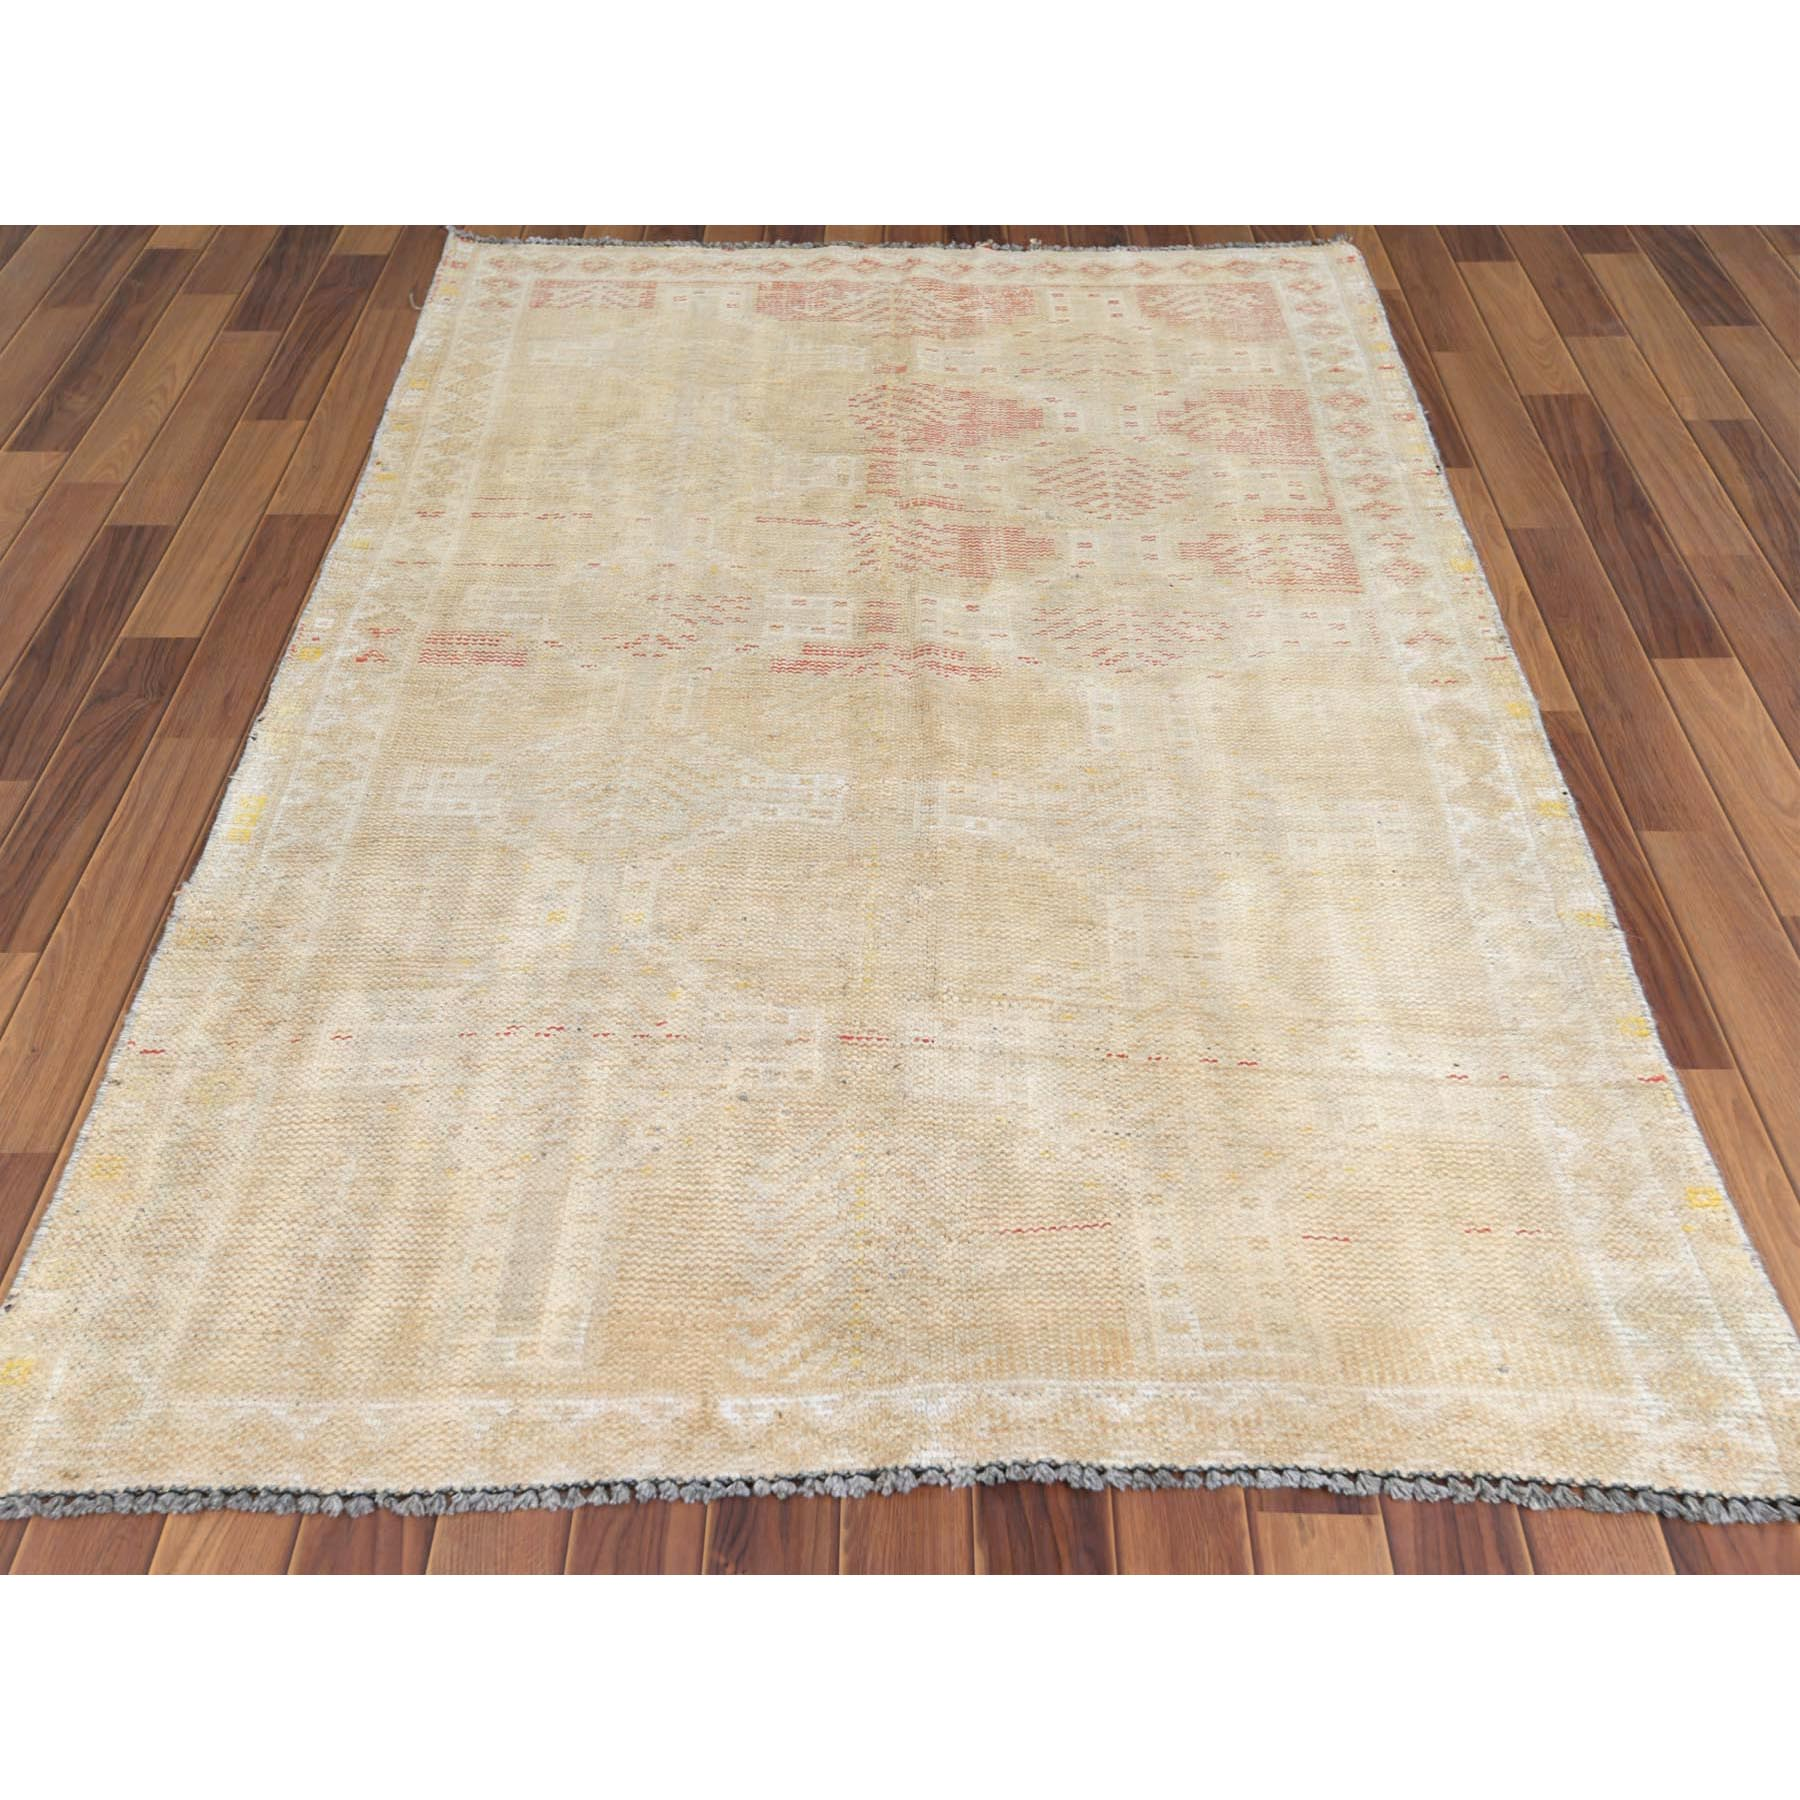 "4'4""x7'2"" Washed Out and Vintage Hand Knotted Persian Shiraz Worn Down Clean Oriental Rug"